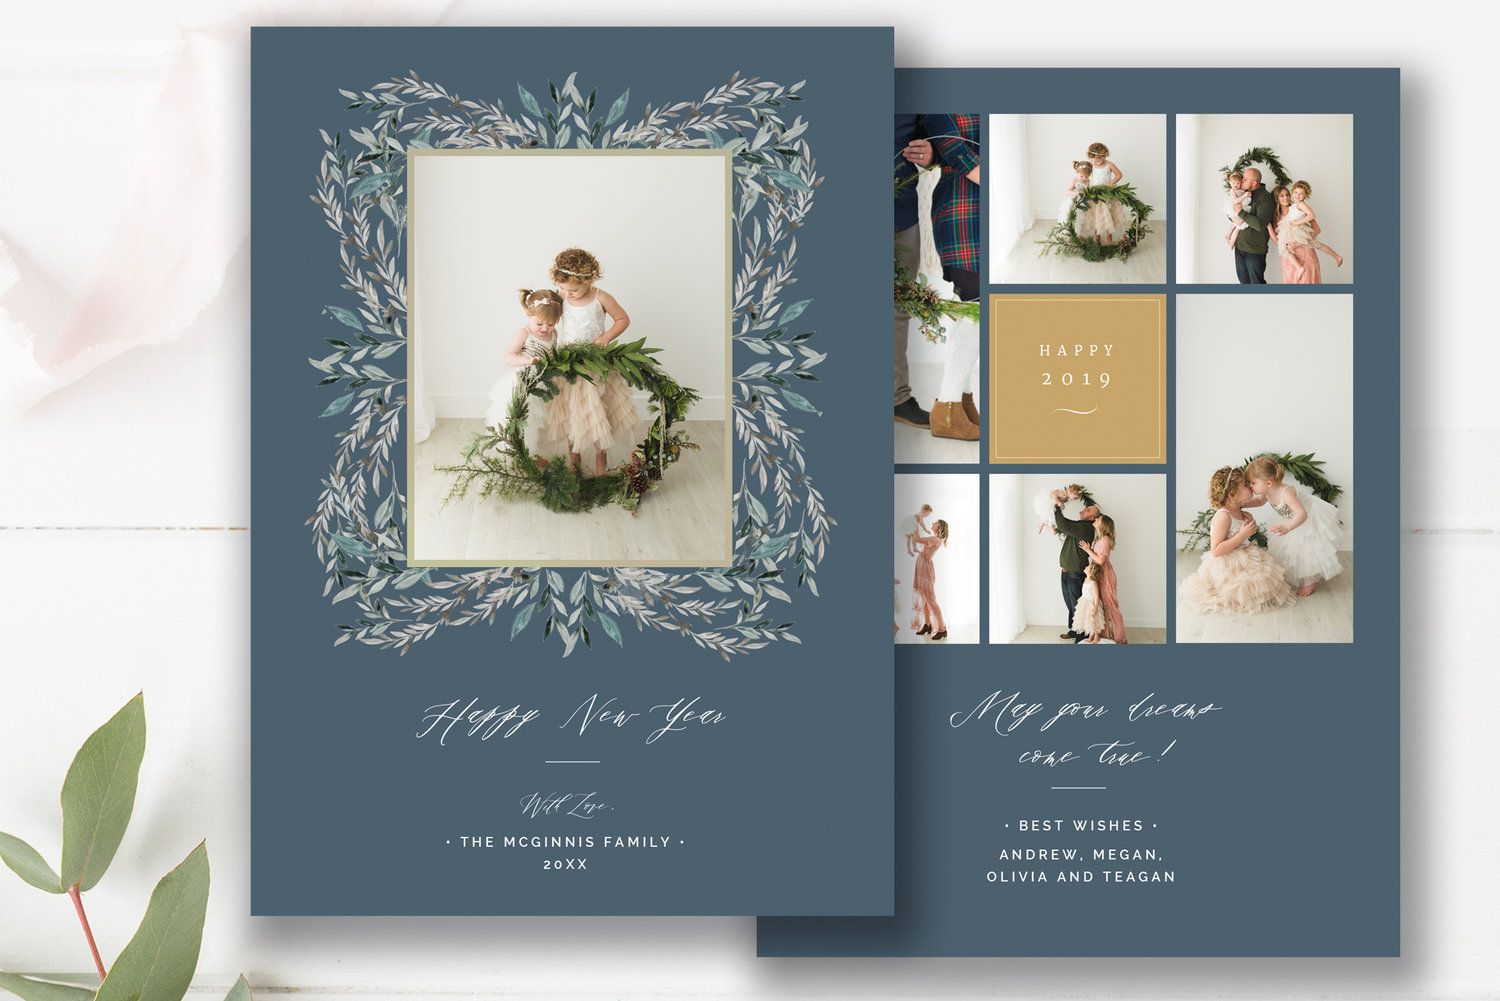 Happy New Years Photo Card Template, Templates